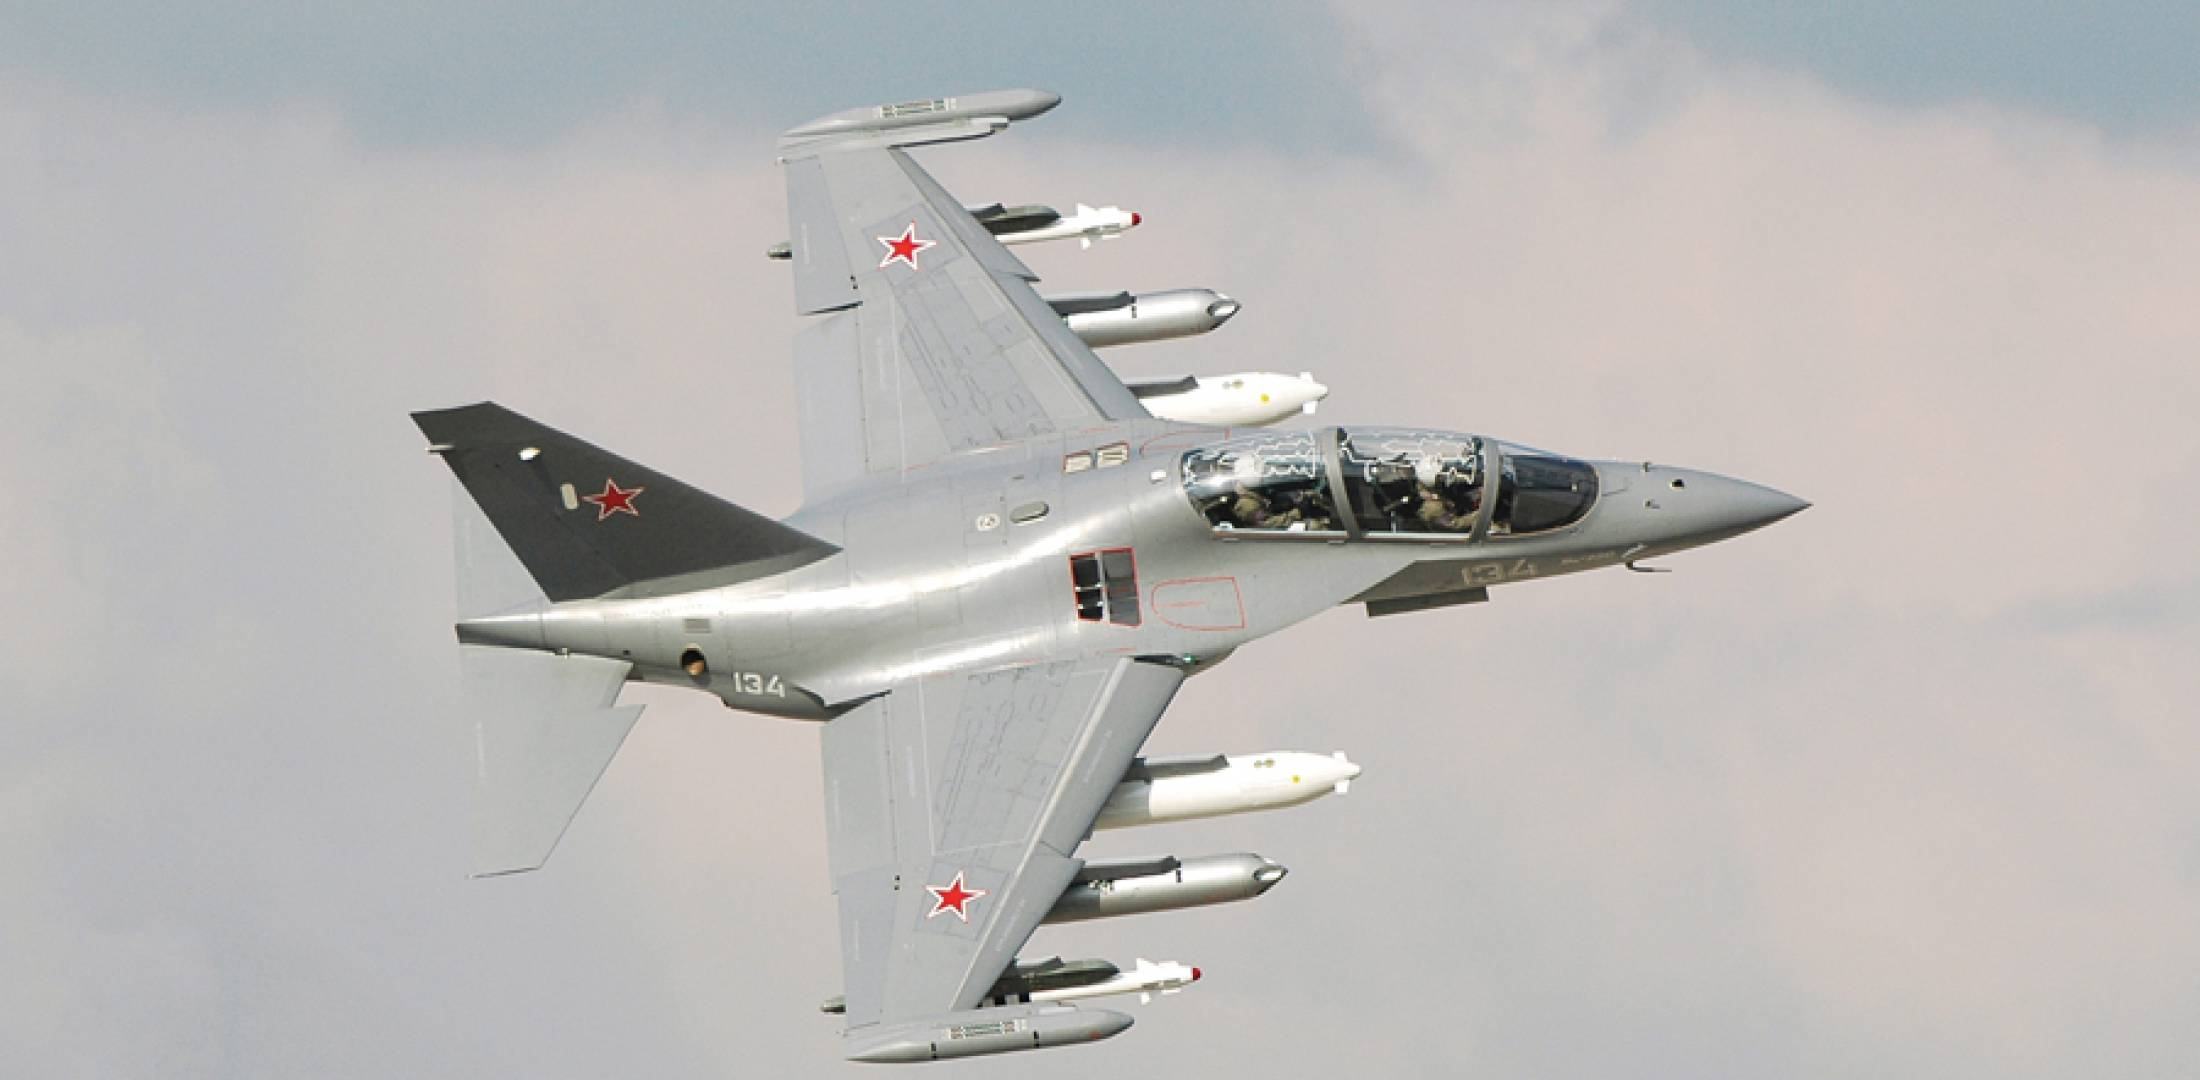 The Yak-130 trainer could find a role in counterterrorist campaigns.